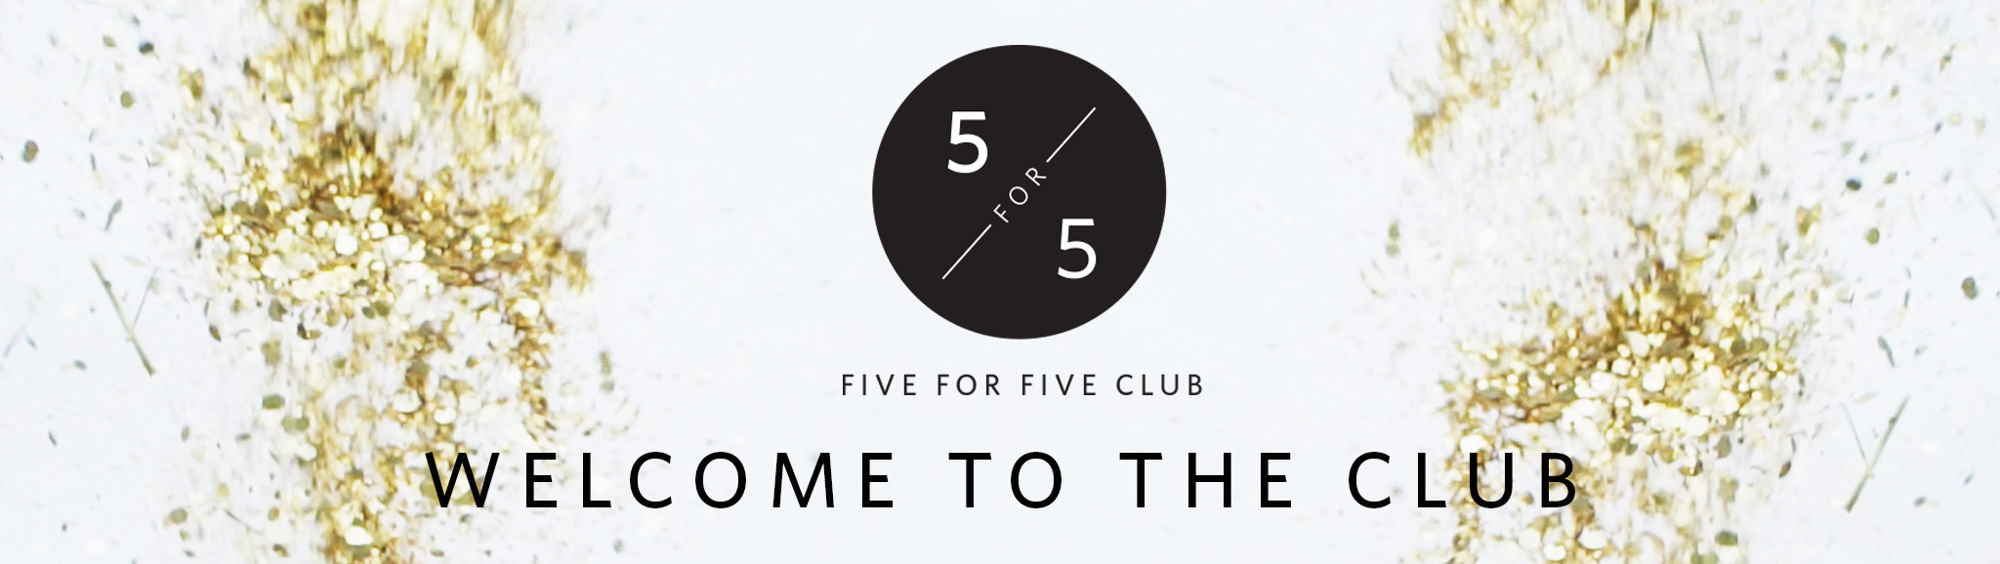 Welcome 5 for 5 Members - Nisolo